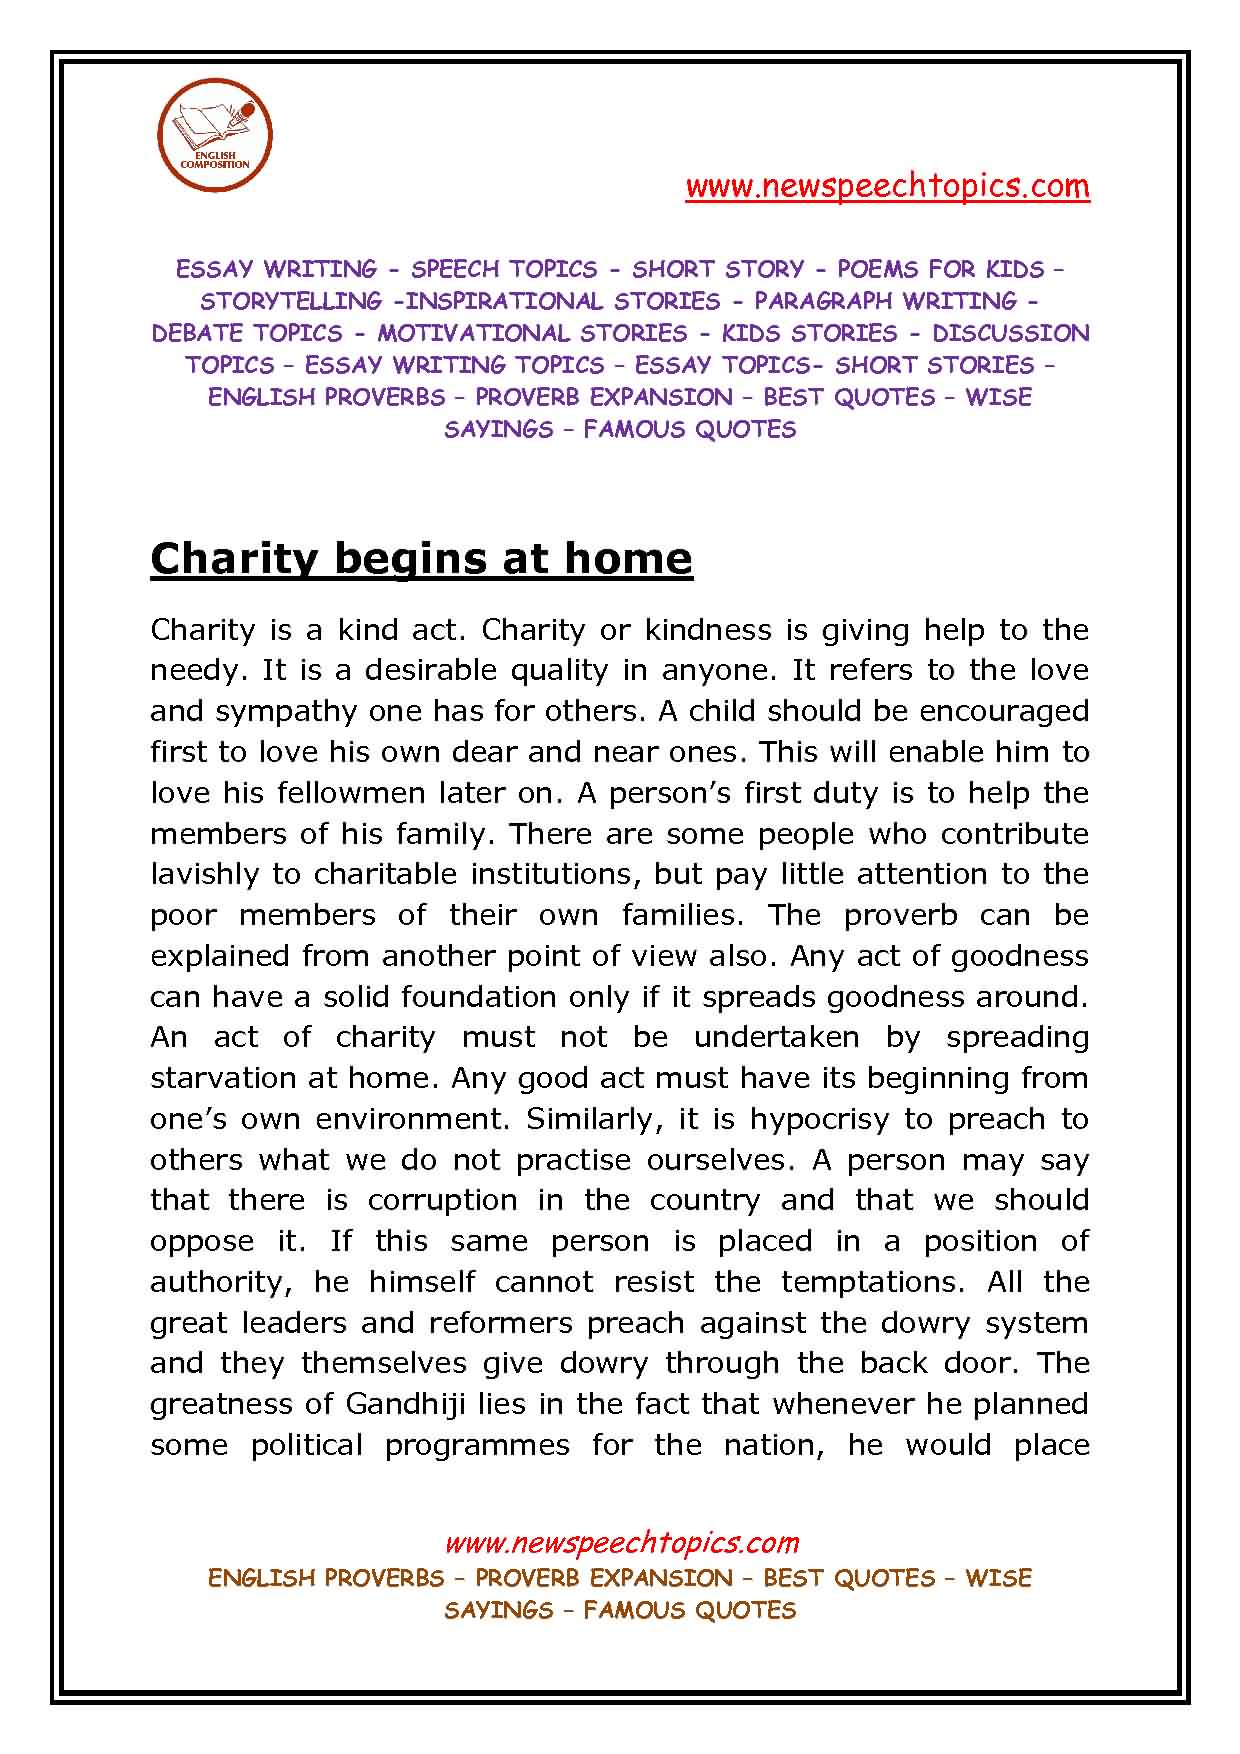 charity quotes ideas images quotespictures com nice charity quote ~charity begins at home